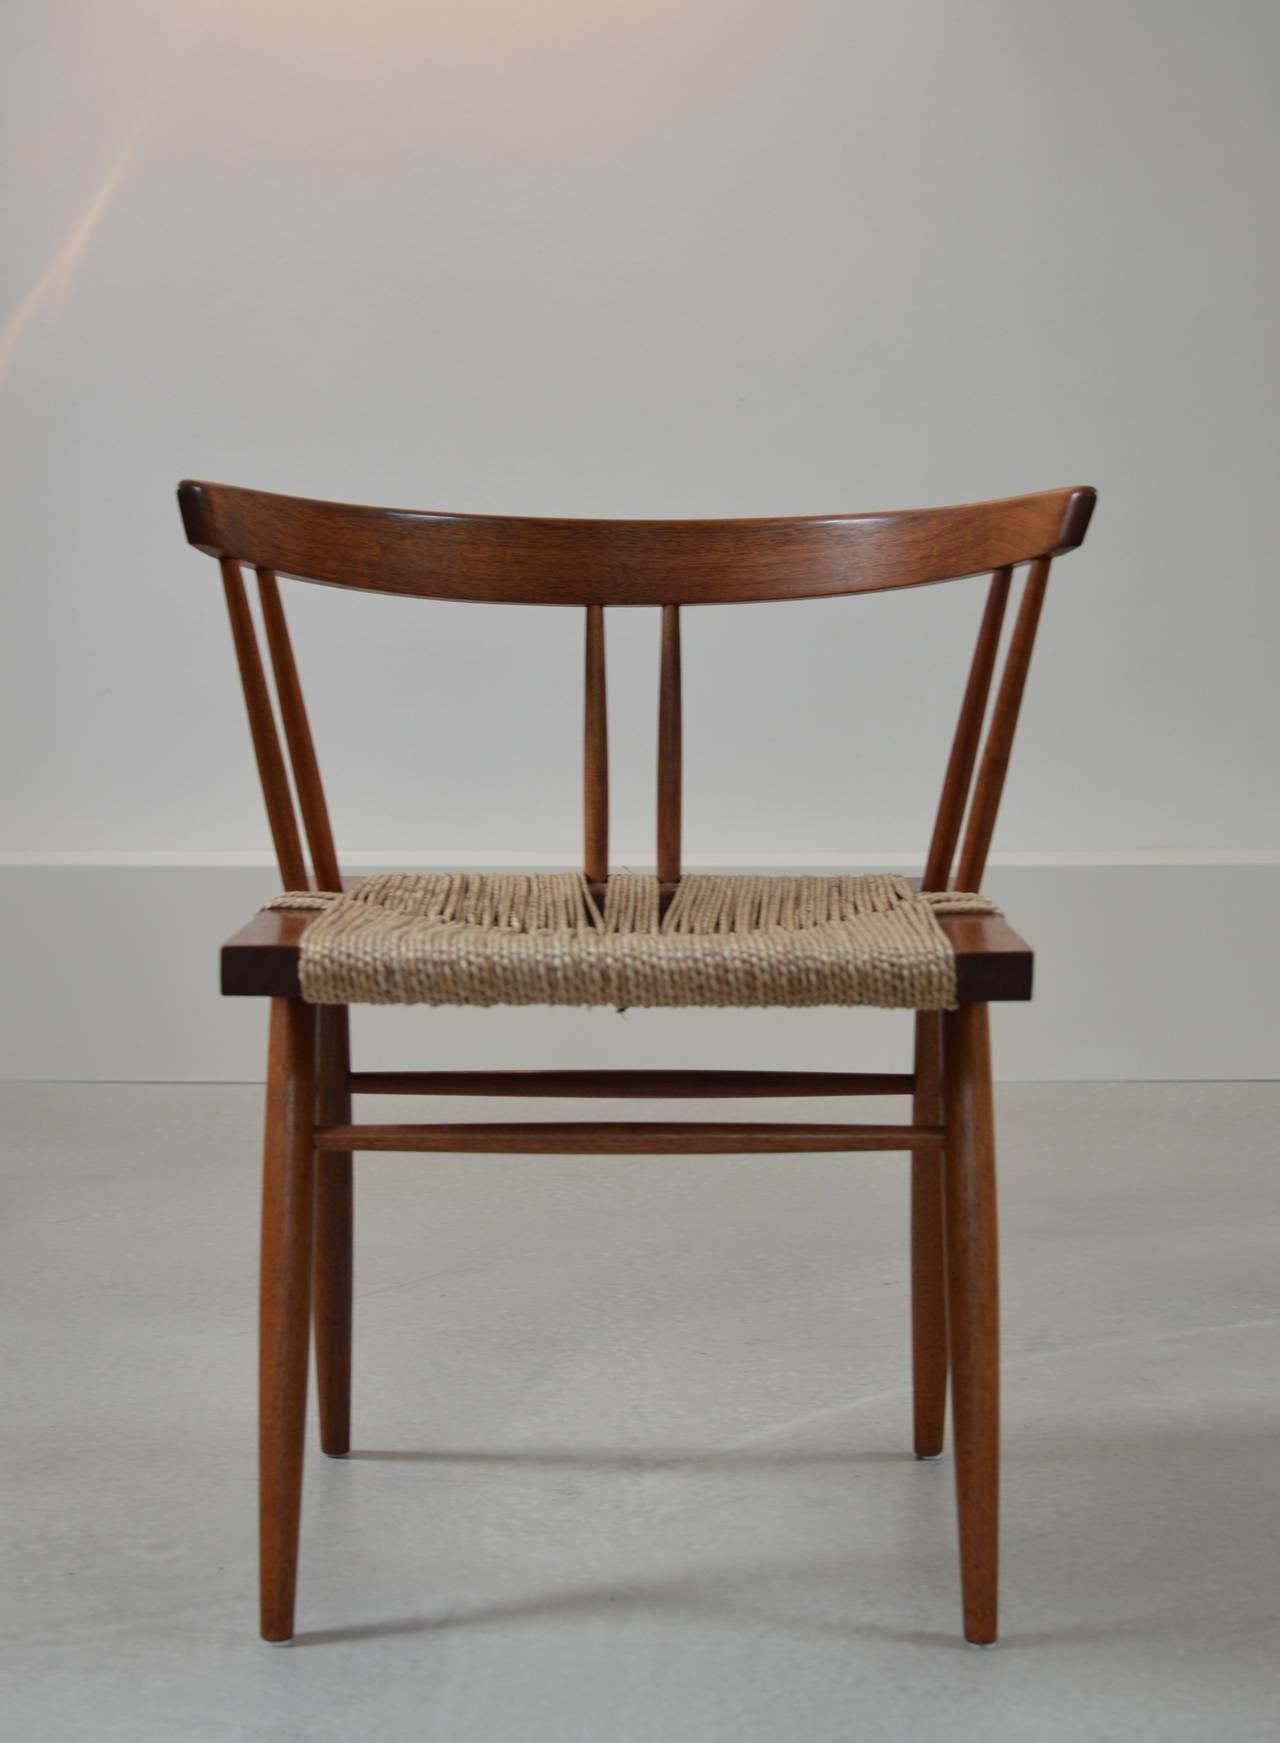 George Nakashima Chairs george nakashima black walnut grass seat chairs at 1stdibs